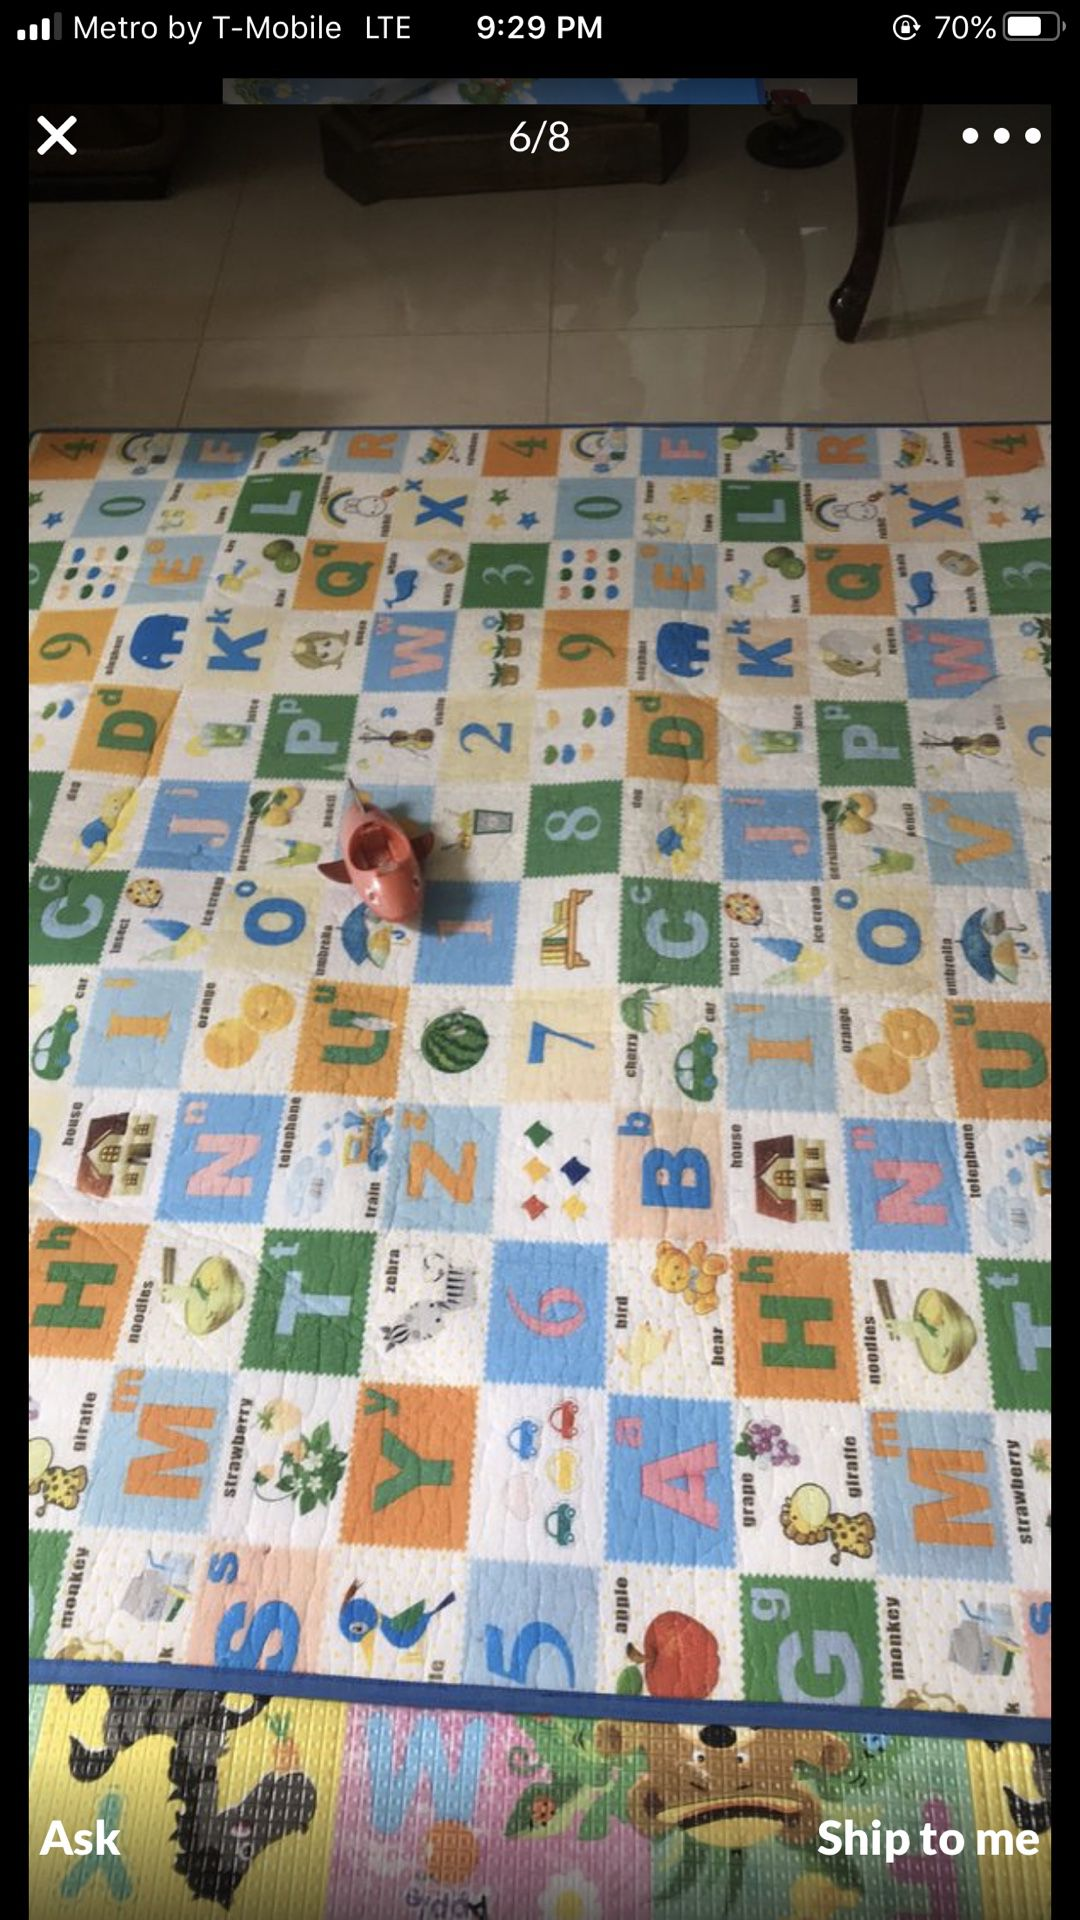 2 alphabet mats in very good condition ine is 7,5x5 another one is 8.5x5.5